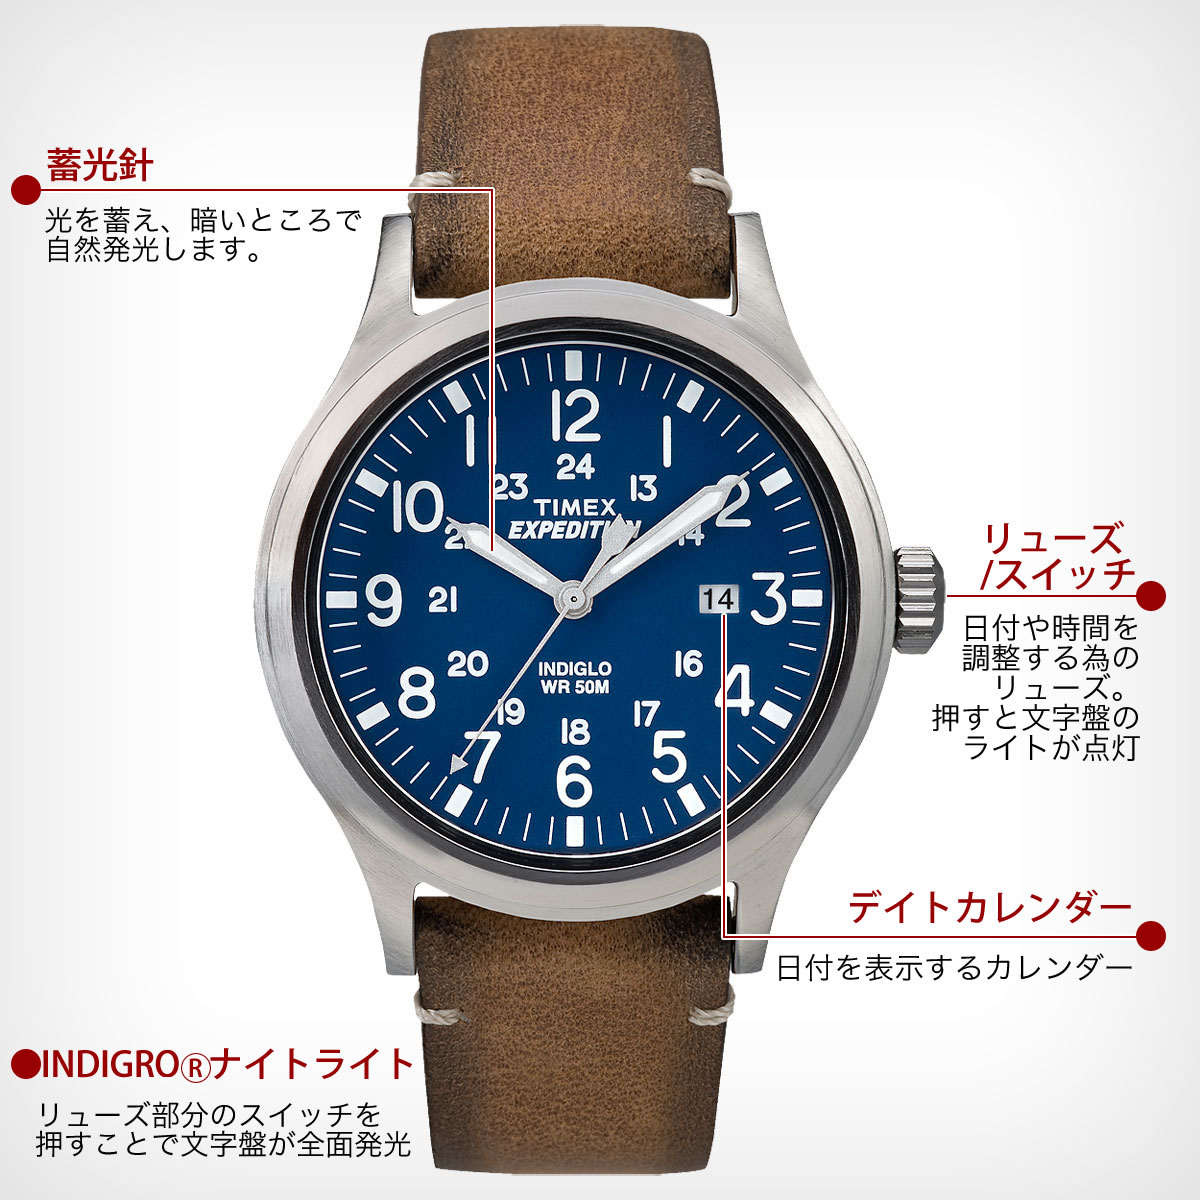 TIMEX Expedition  SCOUT ネイビー 40mm TW4B01800 機能詳細